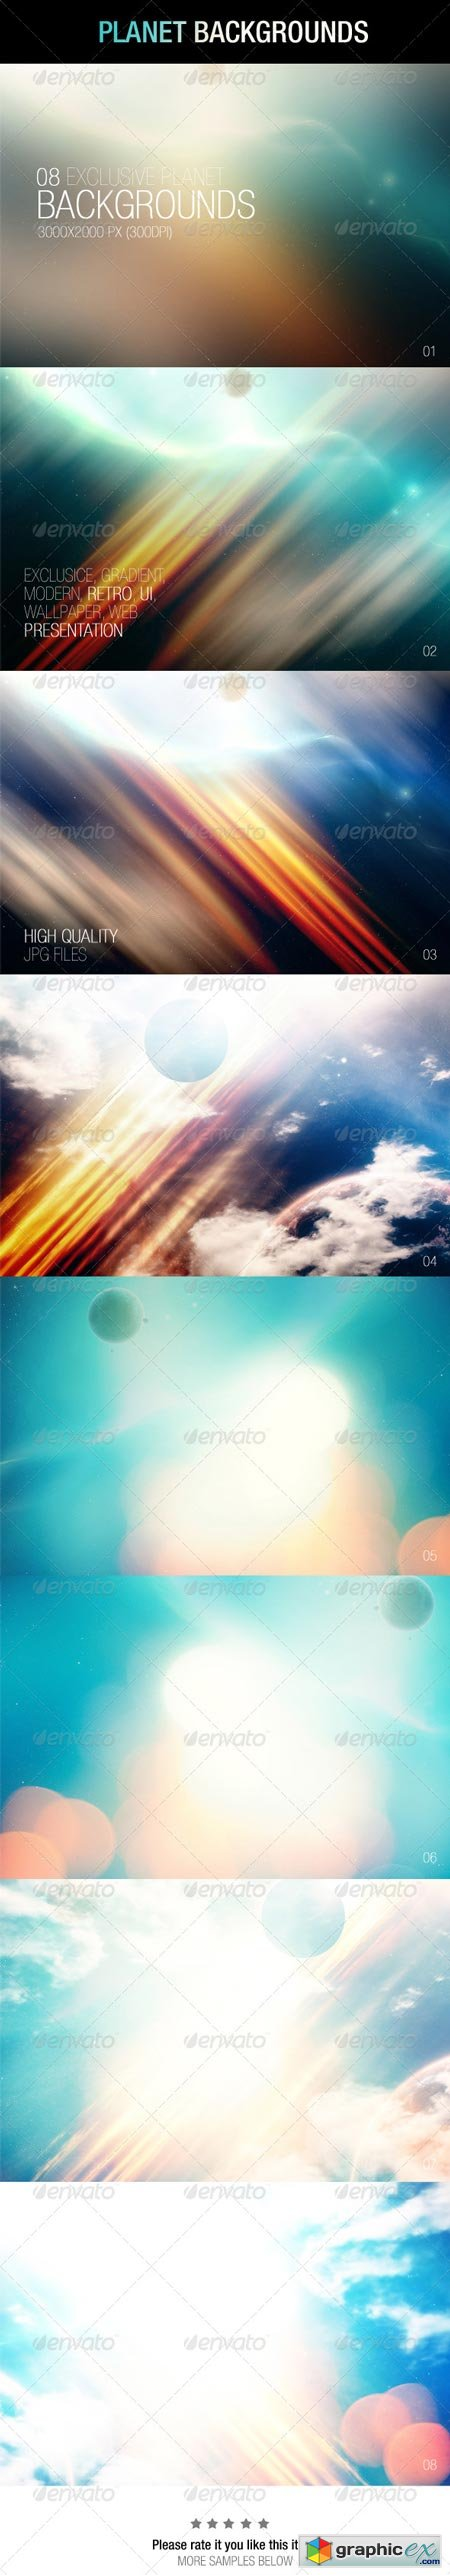 Planet Backgrounds 6884936